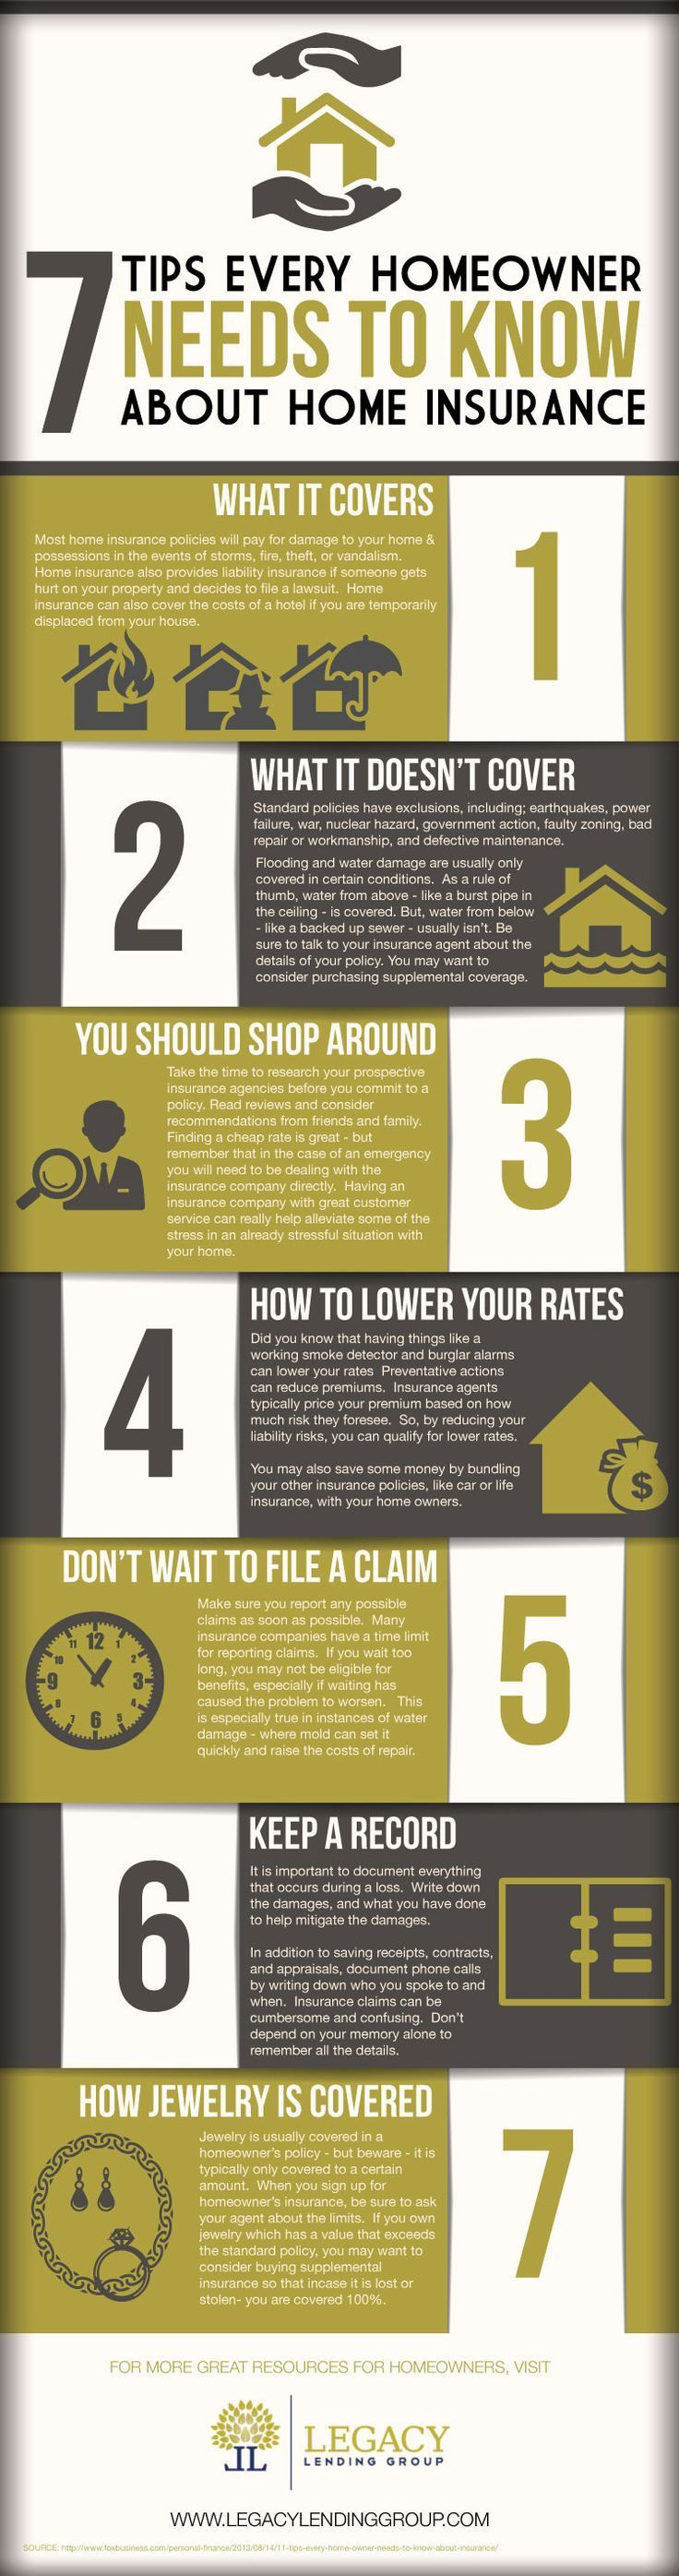 7 Tips Every Homeowner Needs To Know About Home Insurance Home